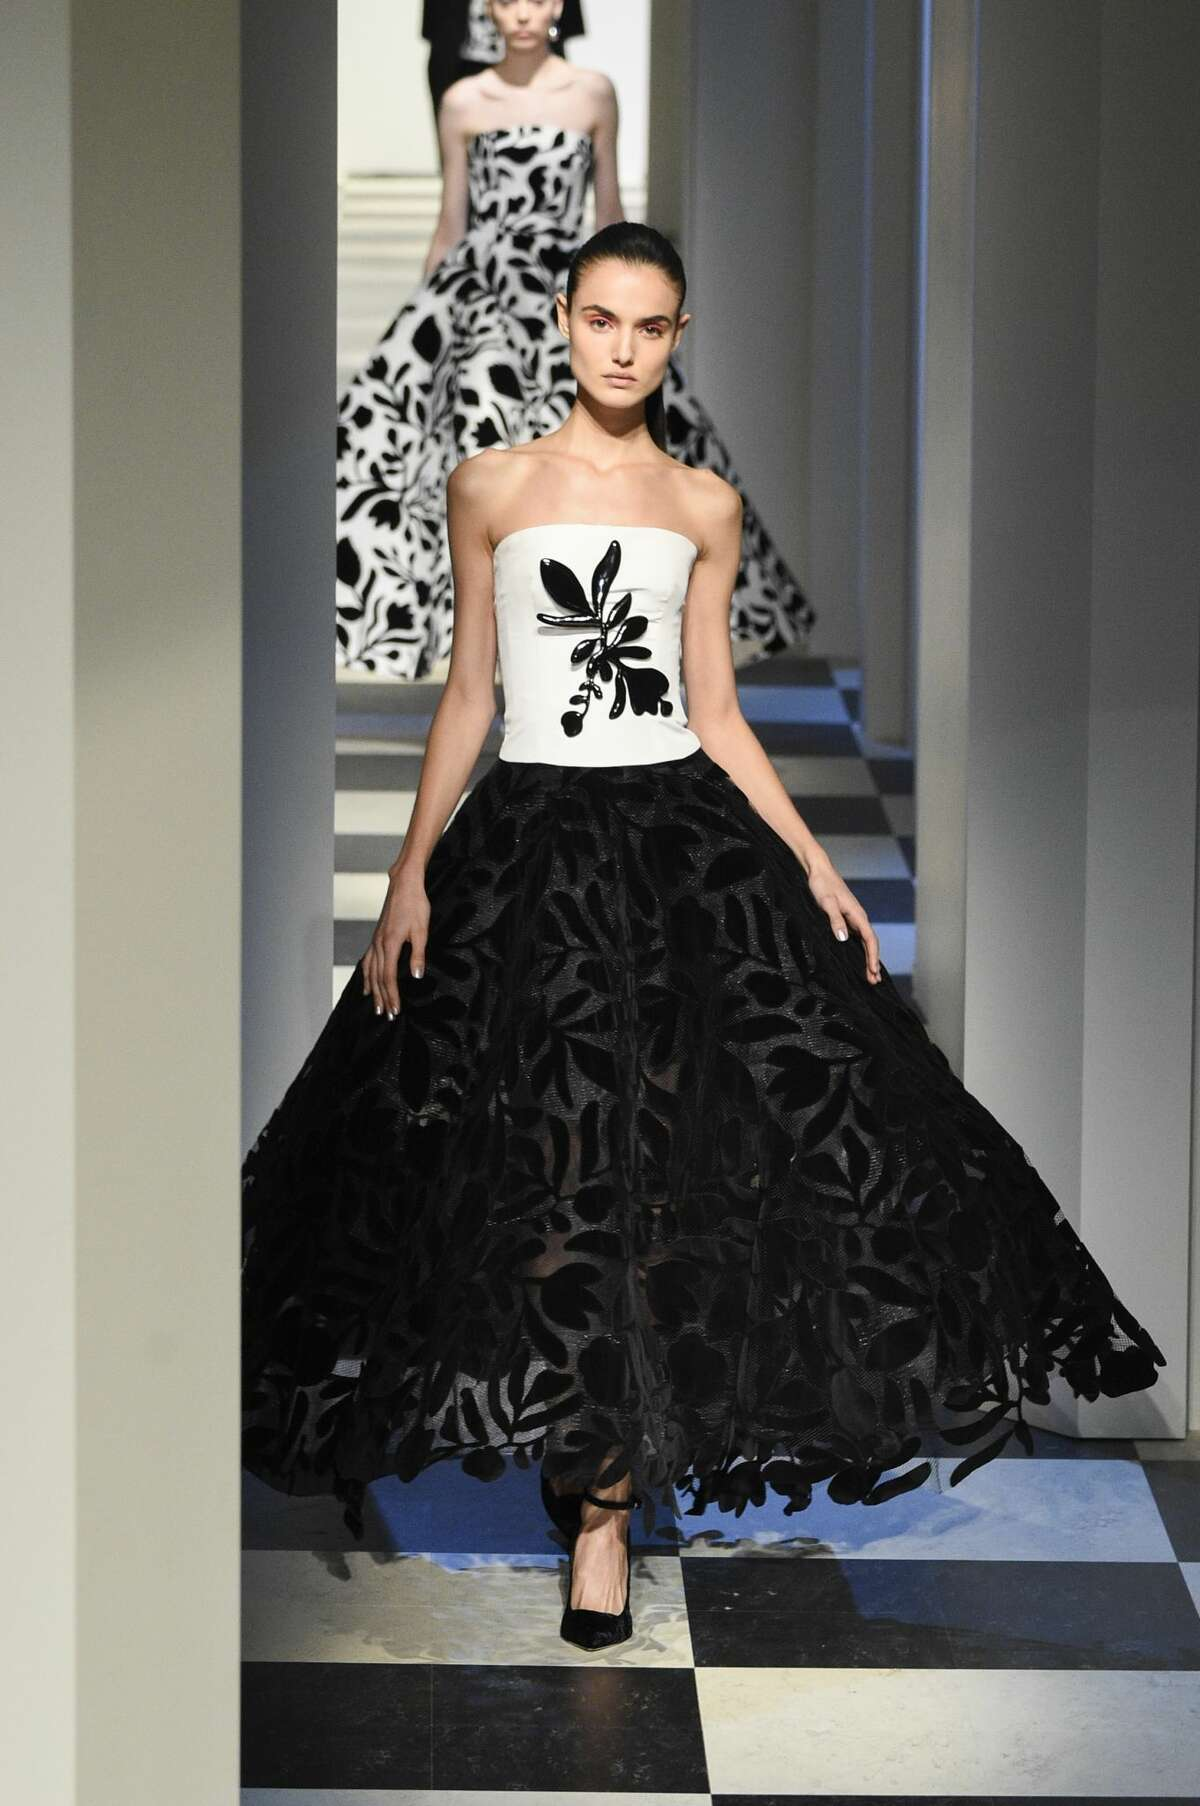 A Model walk the runway at the Oscar de La Renta fashion show during February 2017 New York Fashion Week: The Shows at Gallery 1, Skylight Clarkson Sq on February 13, 2017 in New York City.